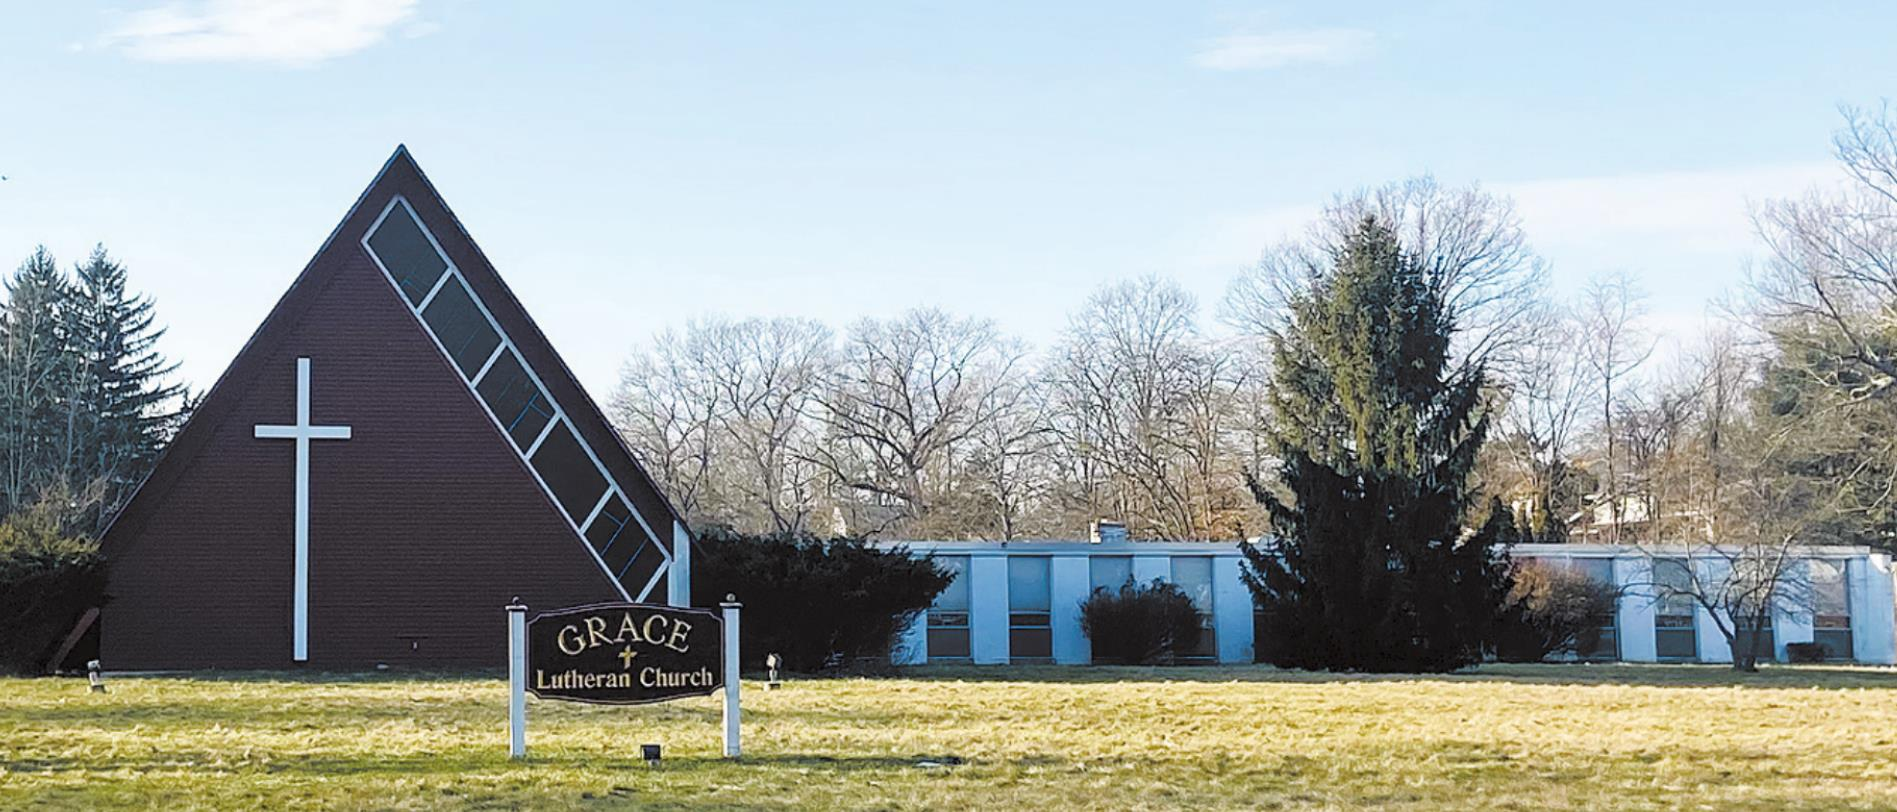 YMCA May Move to Nearby Grace Lutheran Church Property